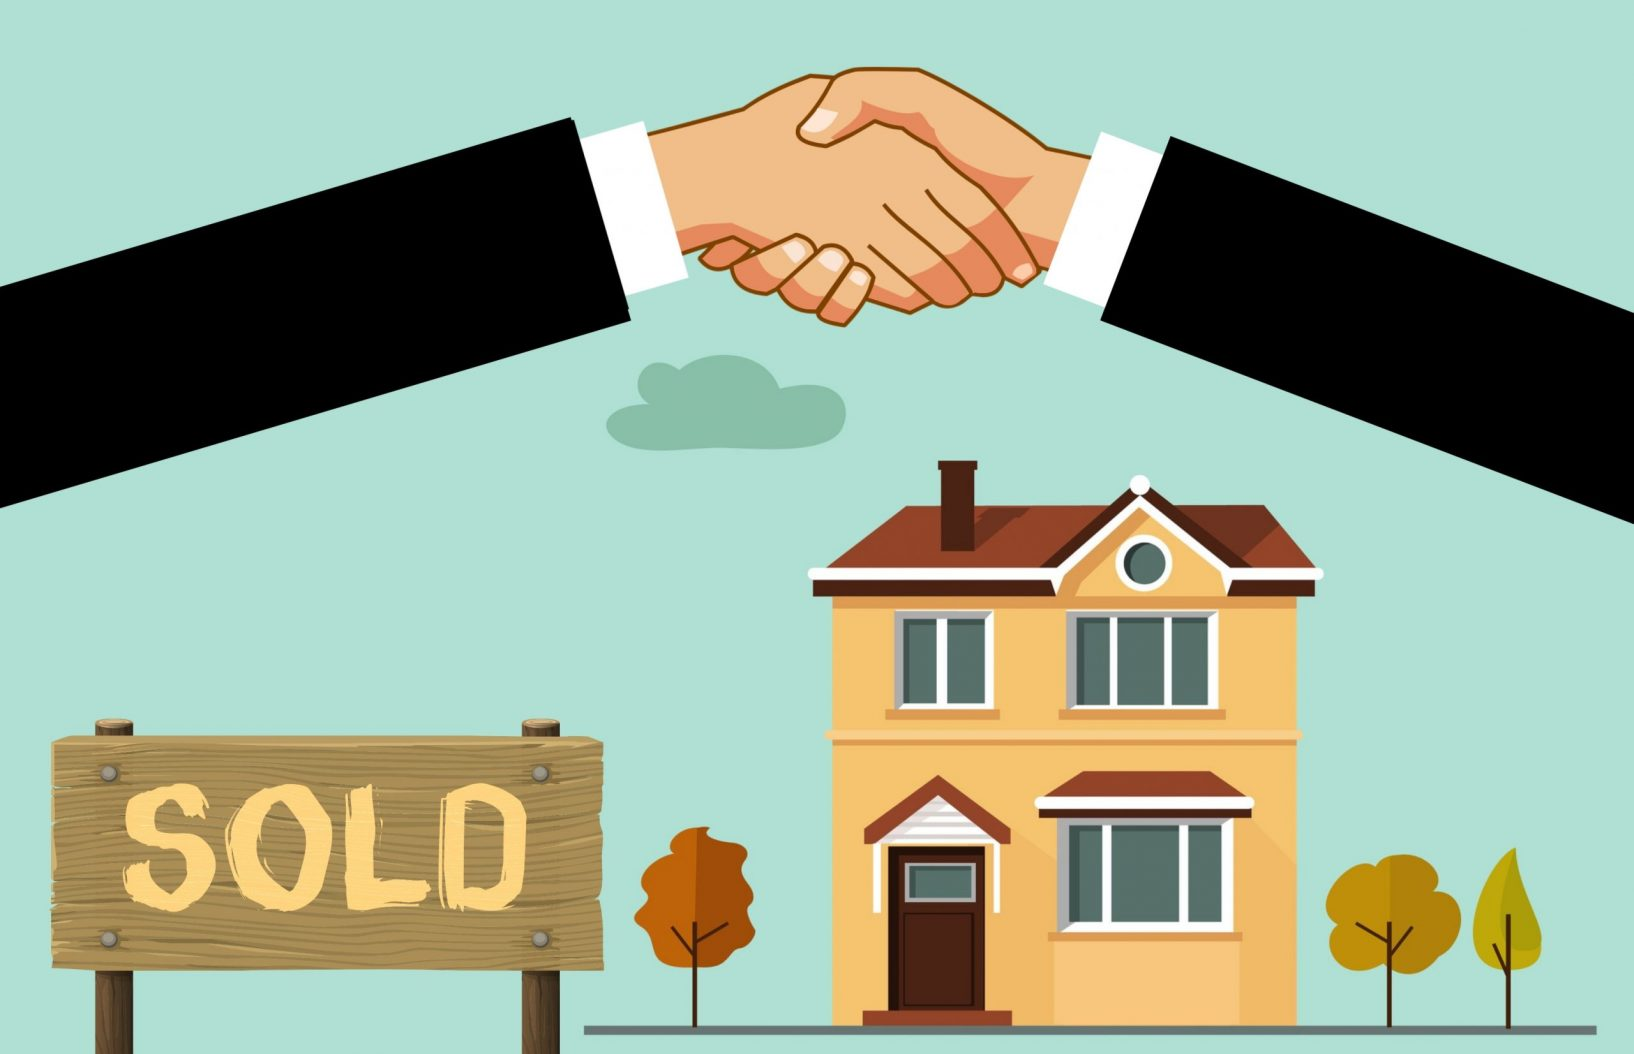 Home buying 101 in San Diego, CA